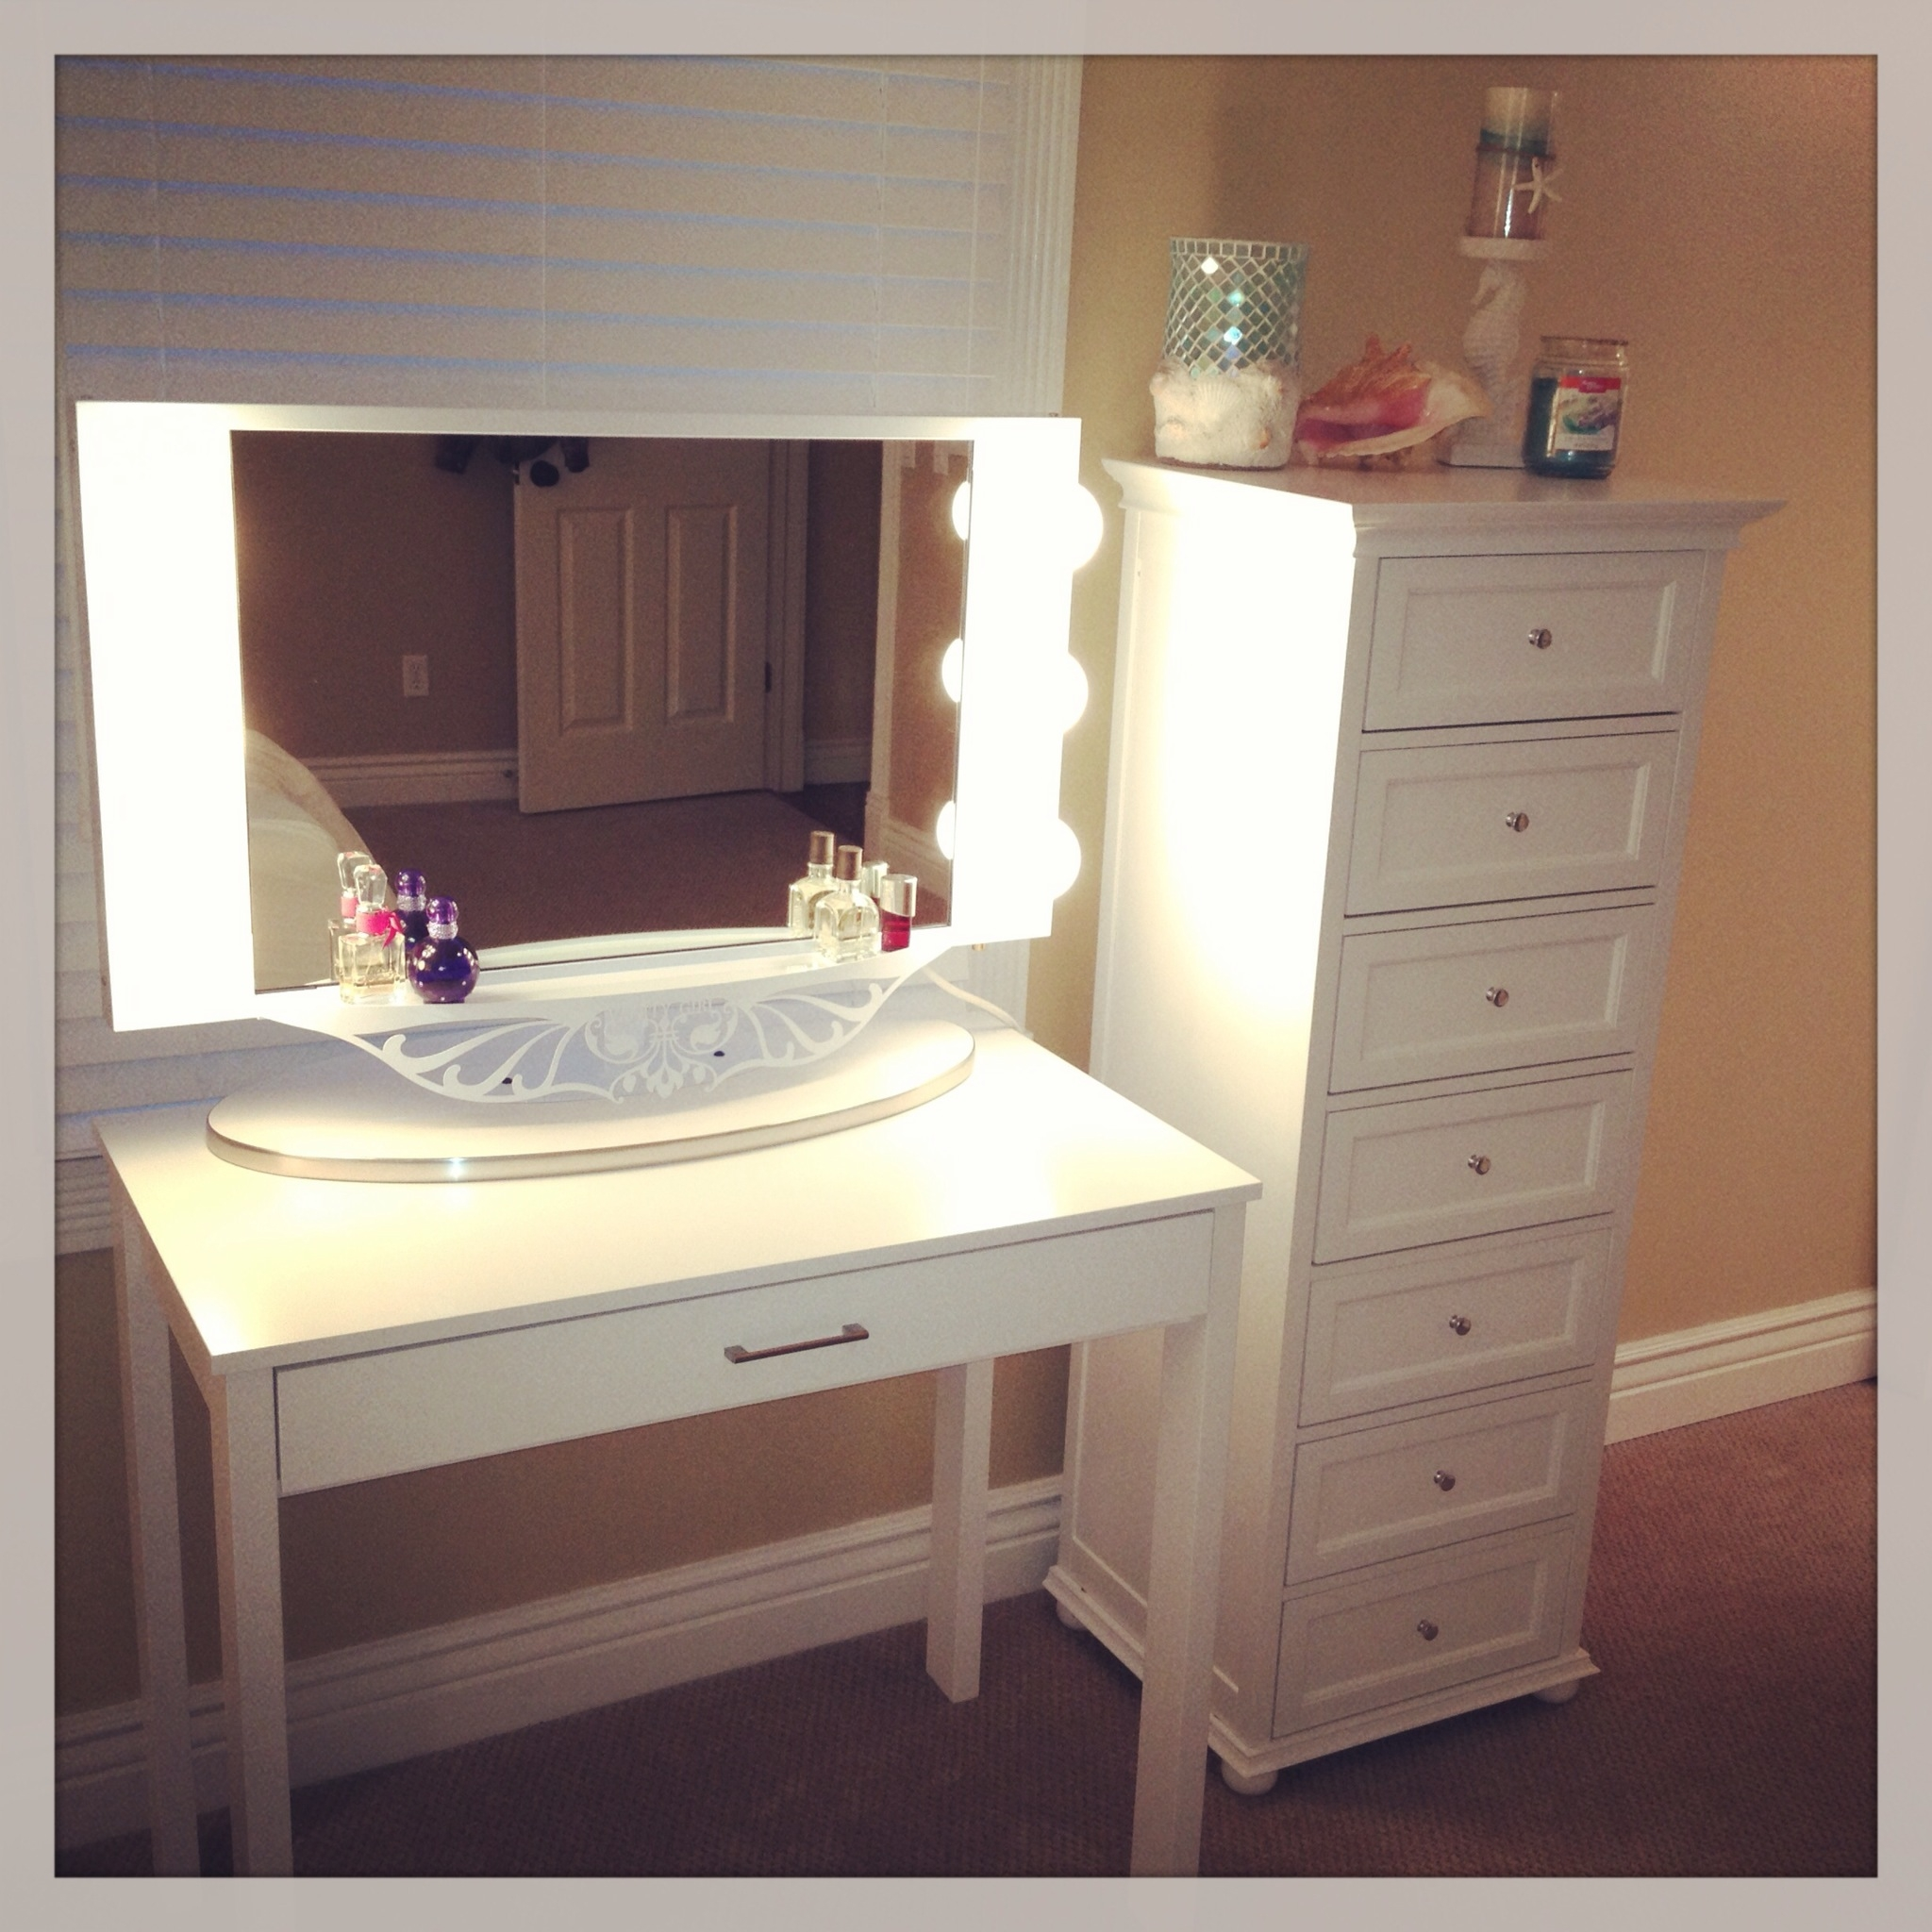 Makeup Vanity For A Small Area Desk From Target Drawers From In Free Standing Dressing Table Mirror (Image 11 of 15)